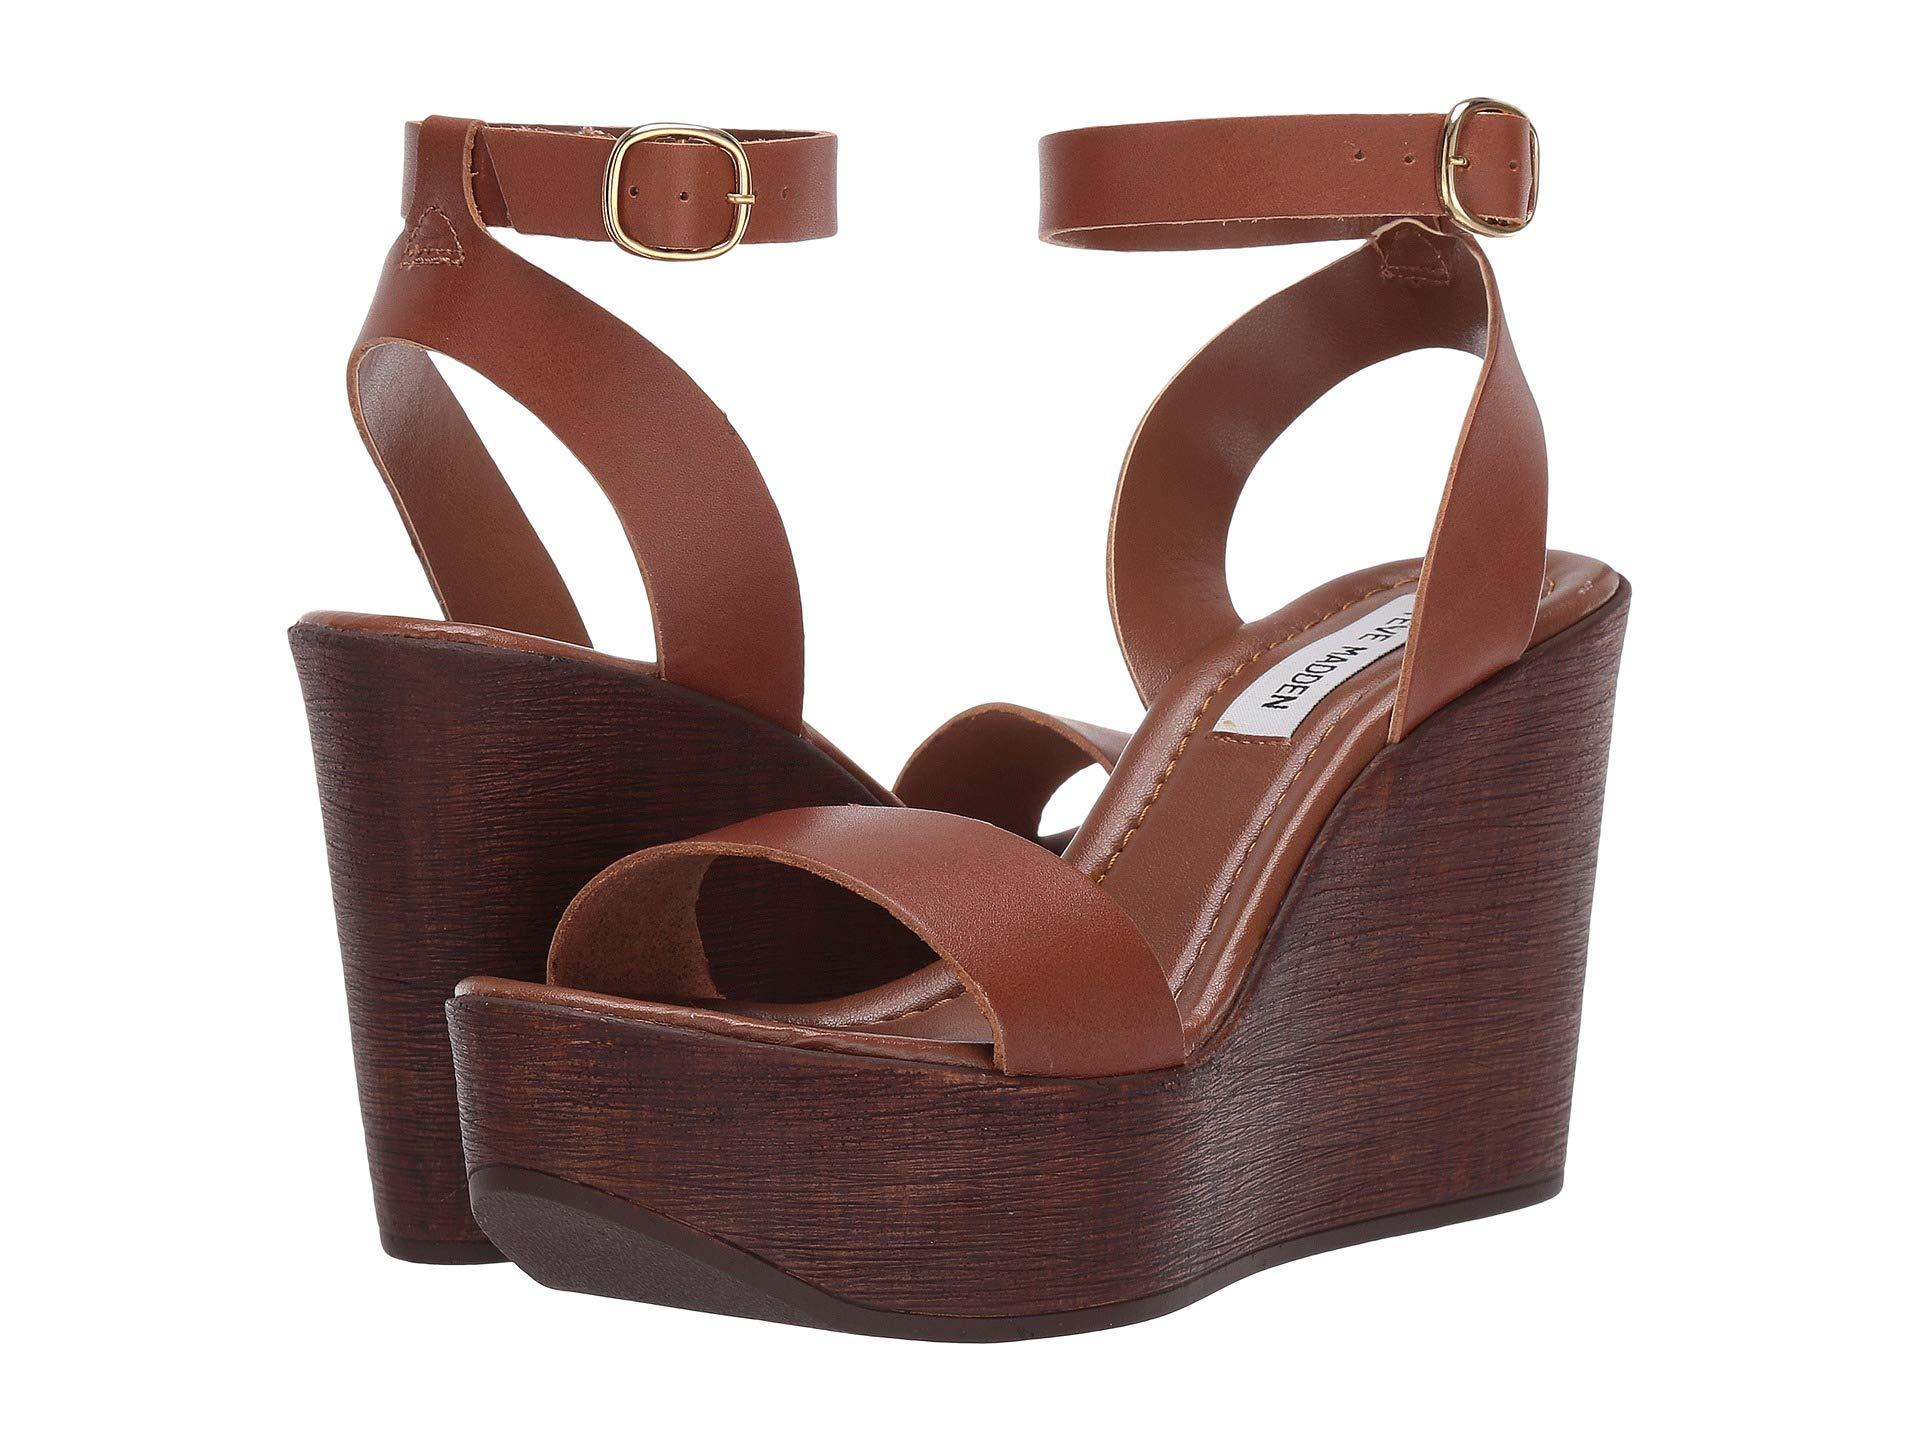 c54d443900d Lyst - Steve Madden Pansy in Brown